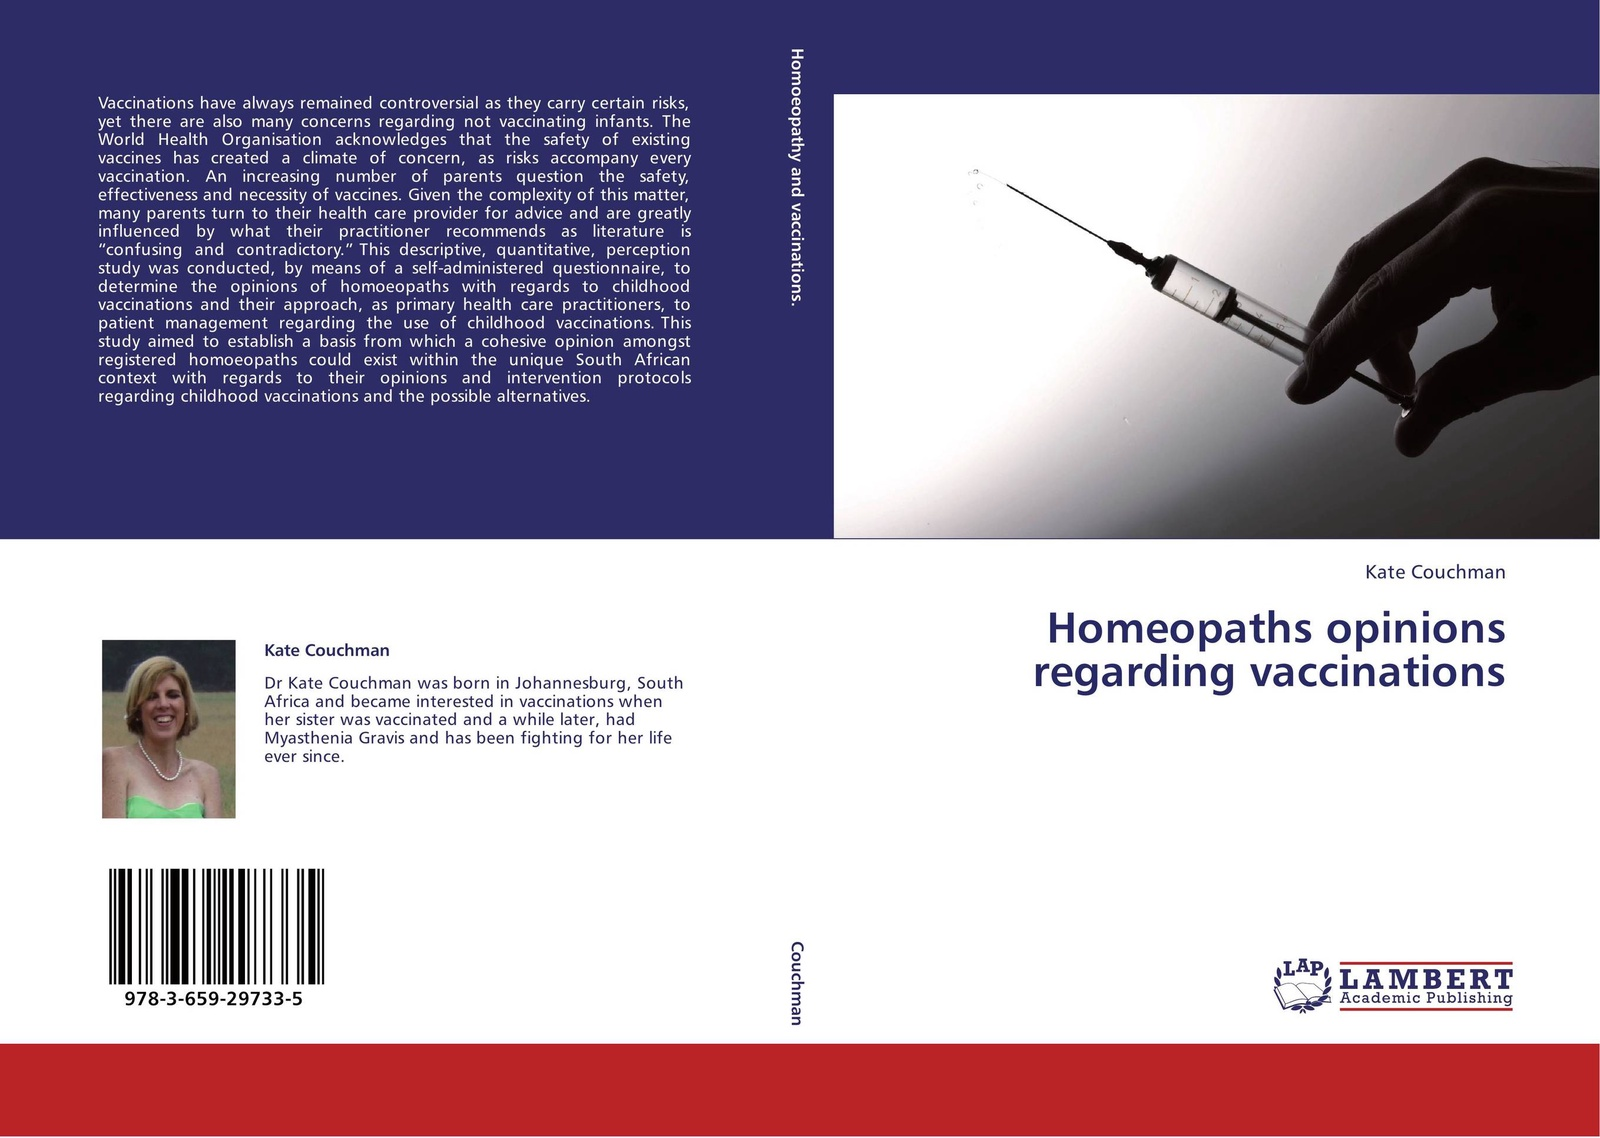 Kate Couchman Homeopaths opinions regarding vaccinations economic and biological aspects of vaccinations